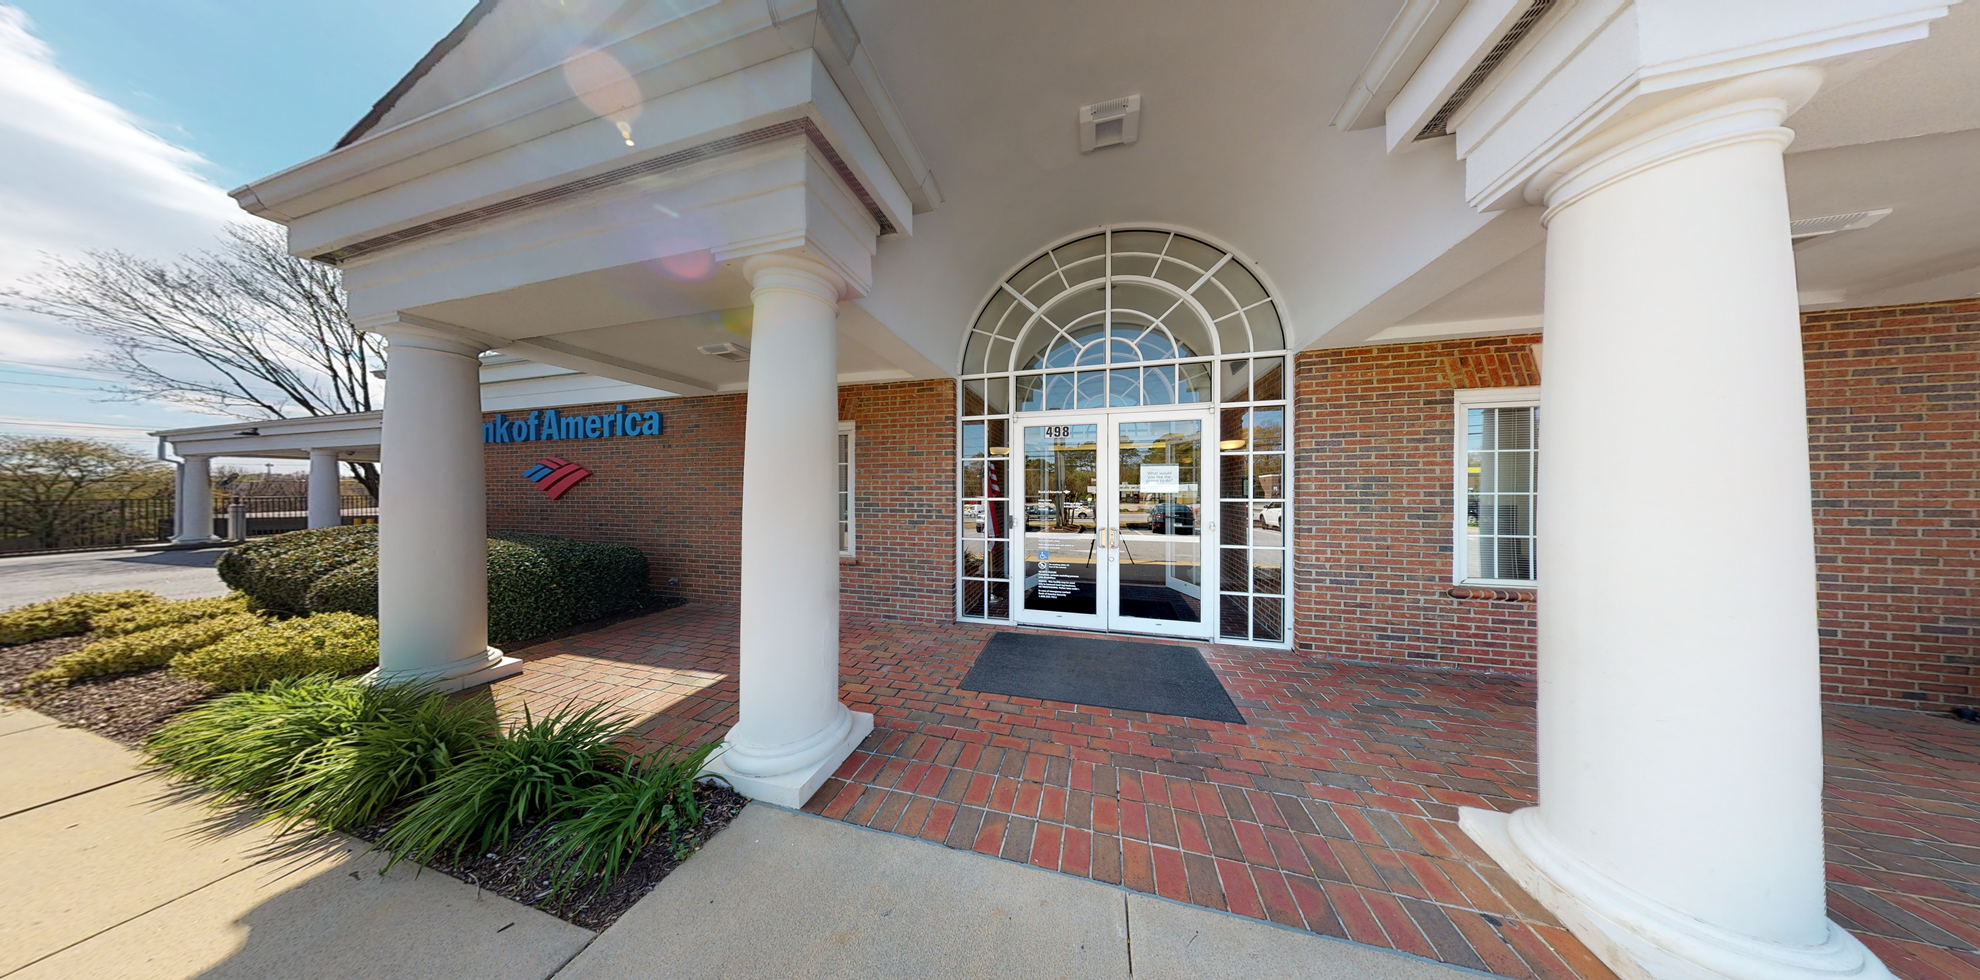 Bank of America financial center with drive-thru ATM | 498 S Pleasantburg Dr, Greenville, SC 29607